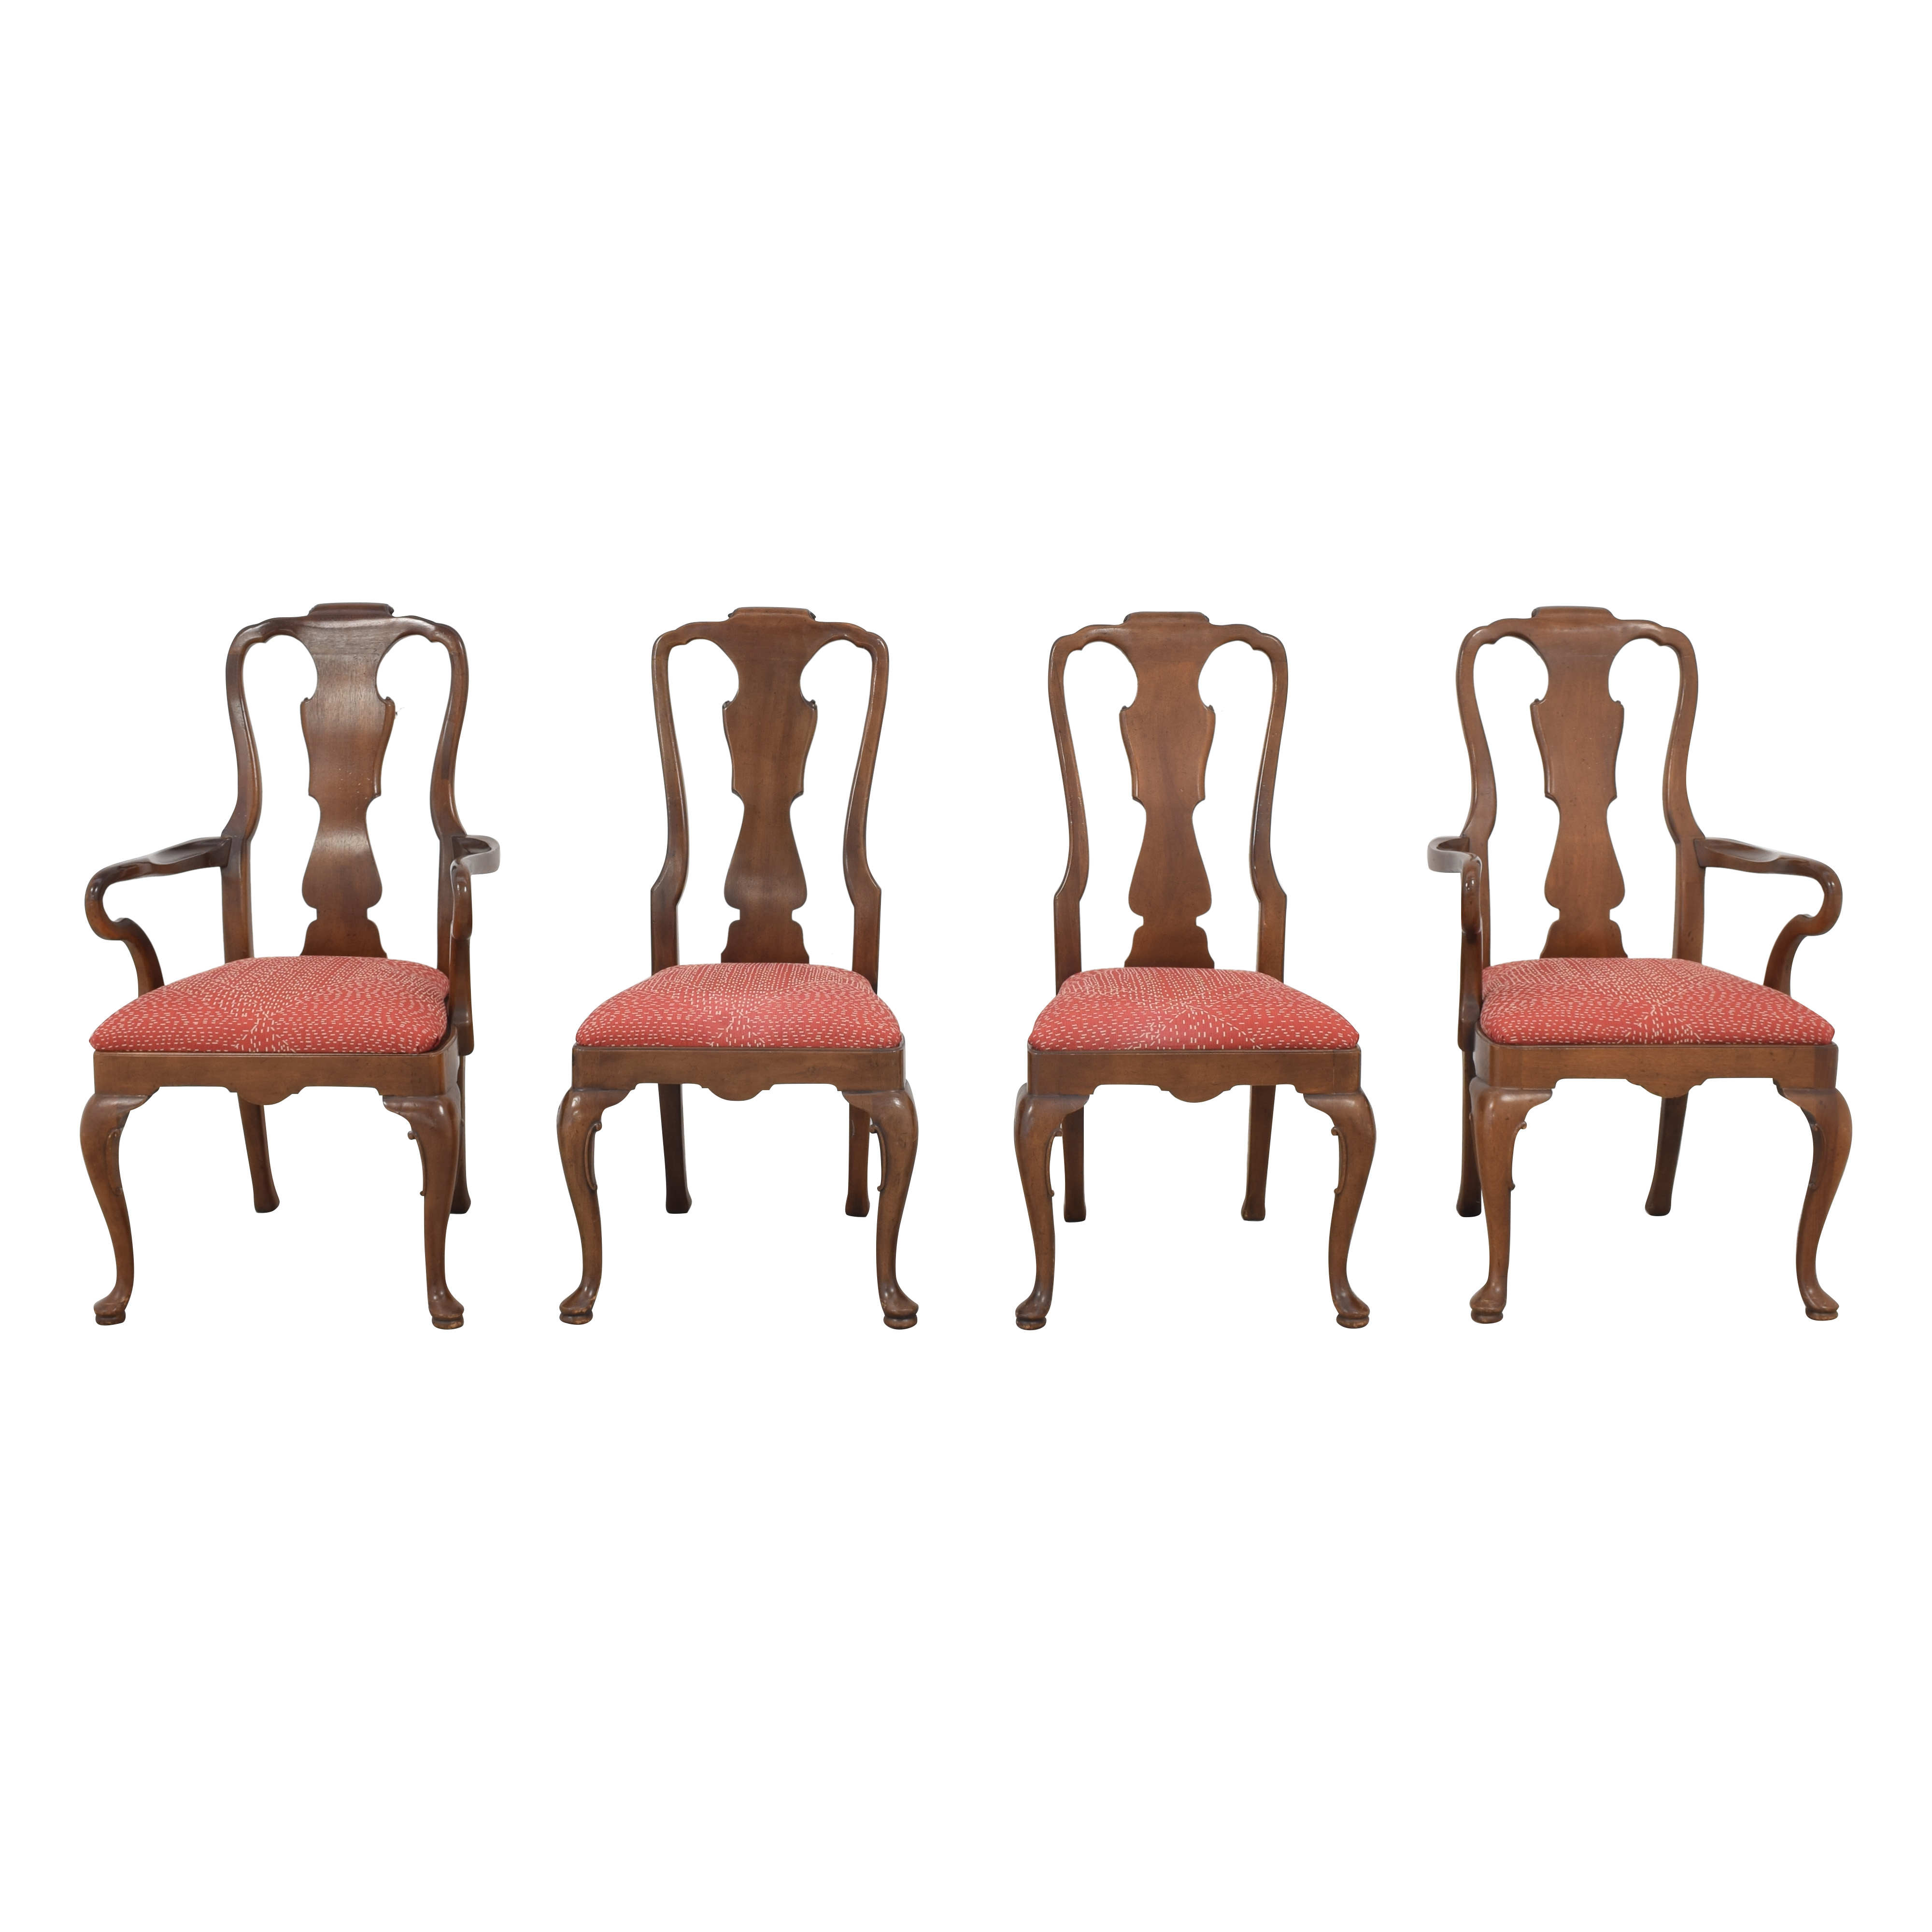 buy Henredon Queen Anne Chairs Henredon Furniture Chairs